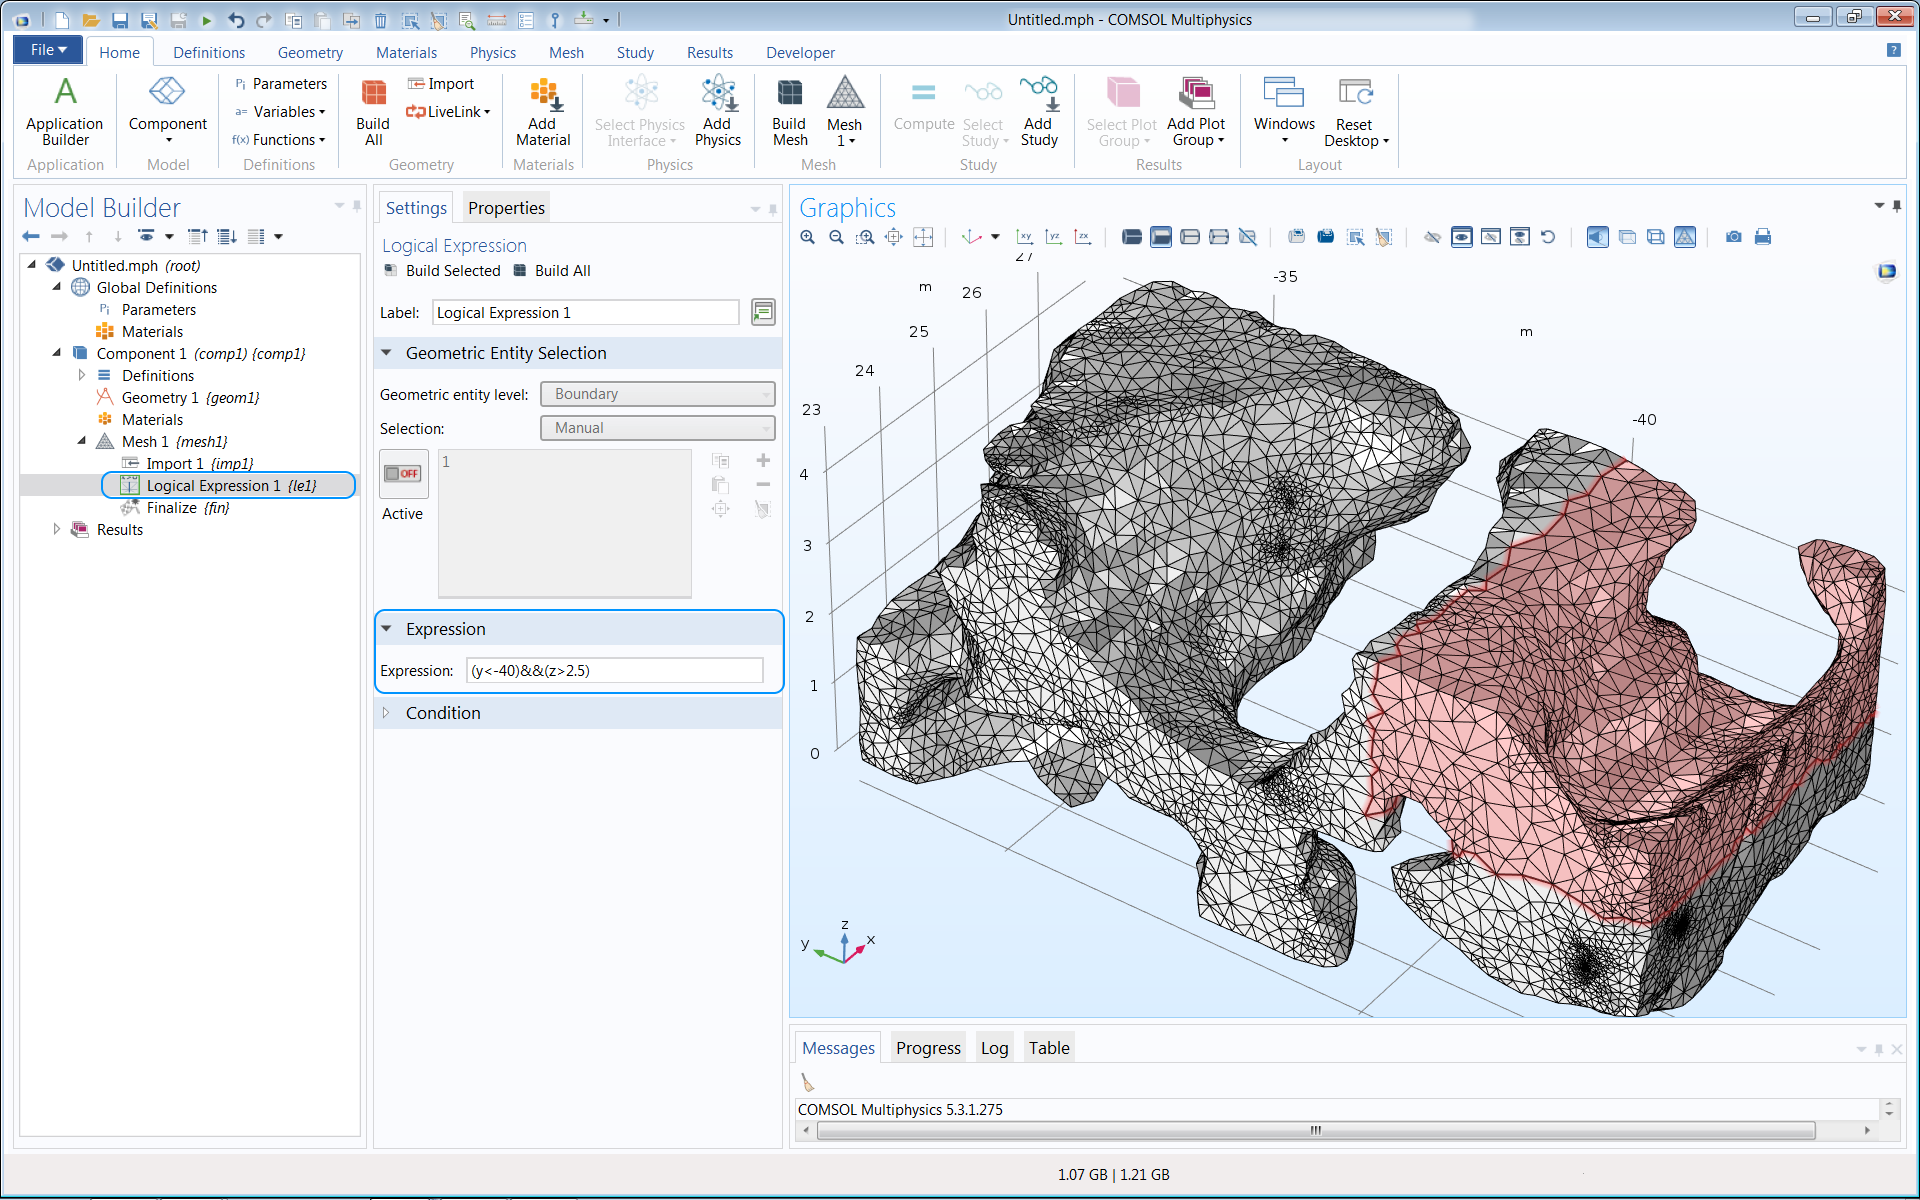 A screenshot of the COMSOL Multiphysics GUI showing a meshed model.